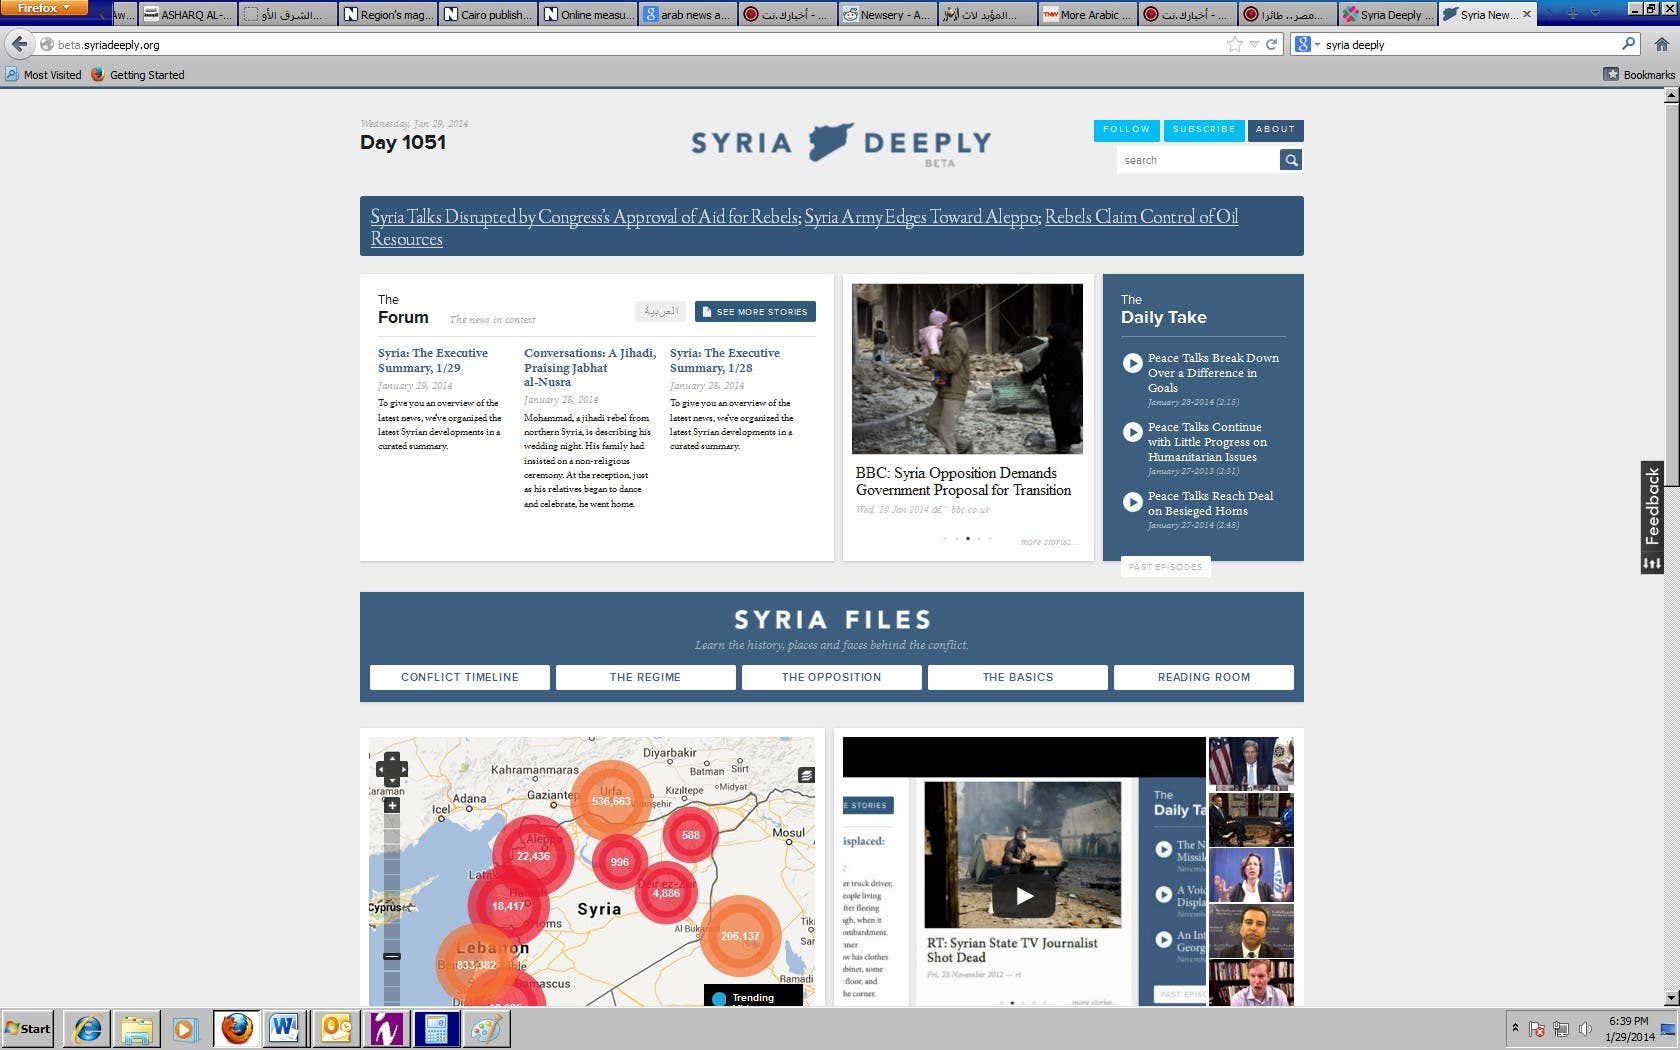 The Syria Deeply website